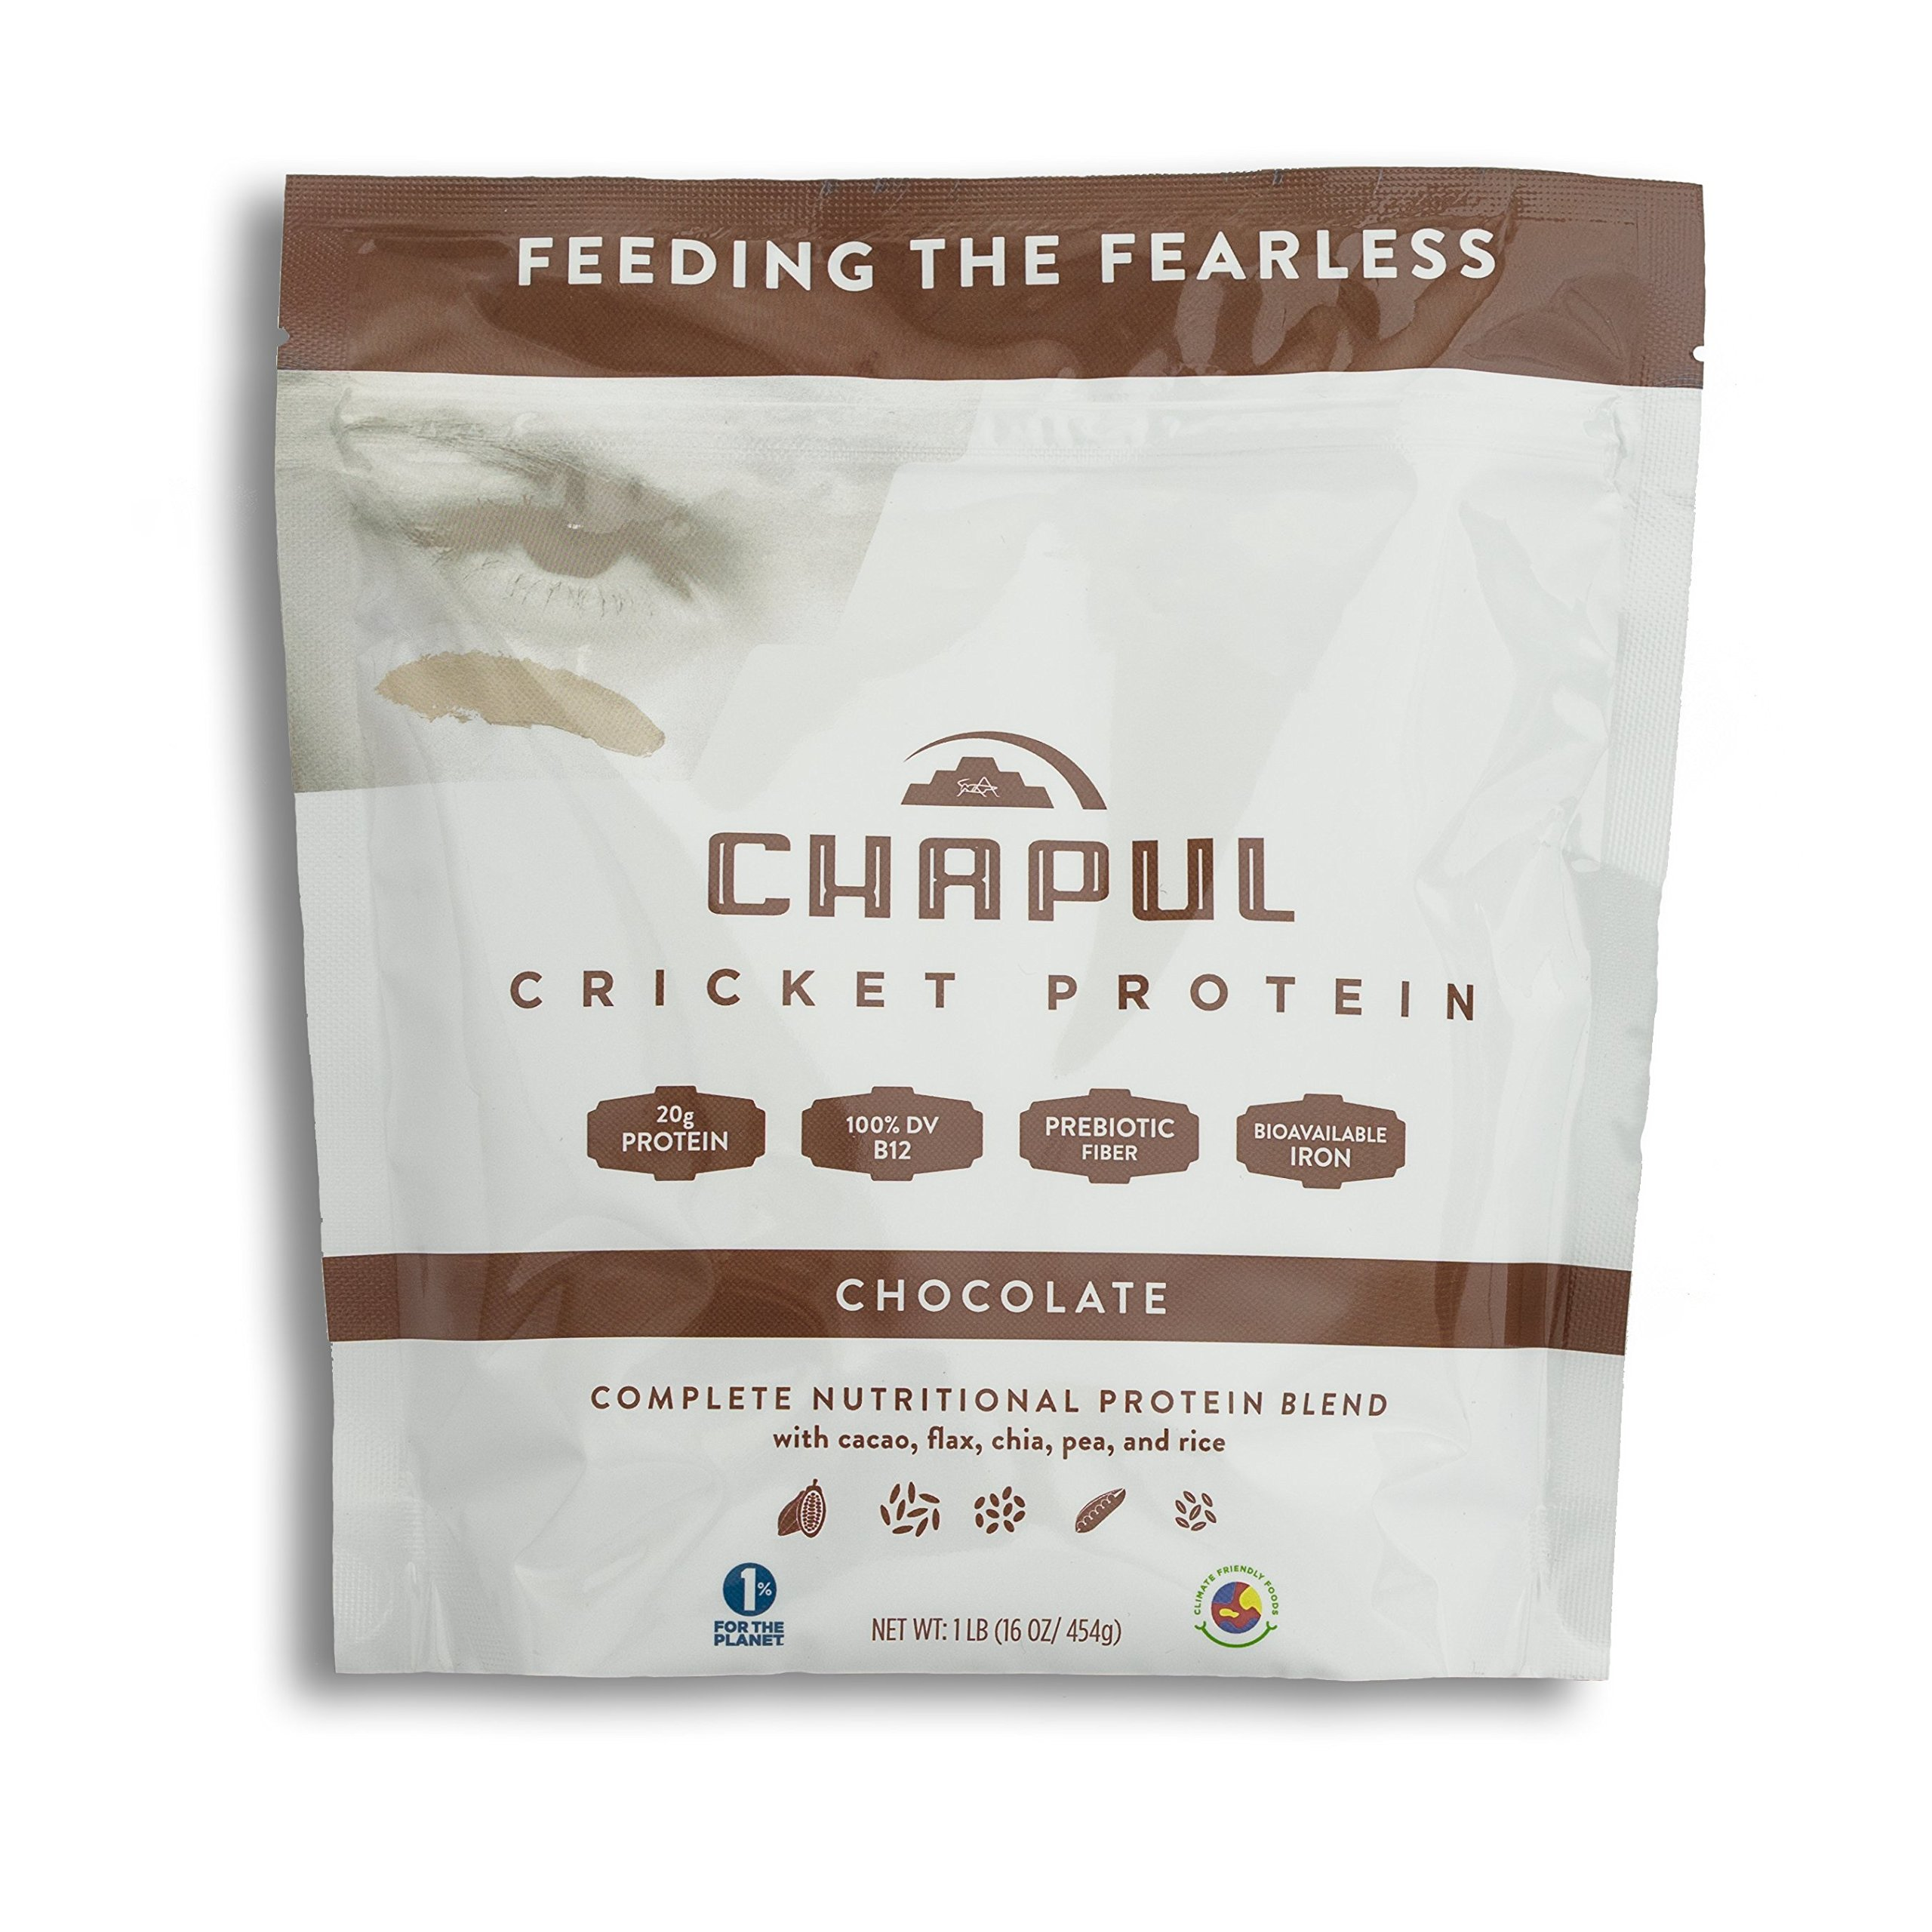 Chapul Cricket Protein Powder (Chocolate, 1 Pound) - 20g Complete Protein  per Serving